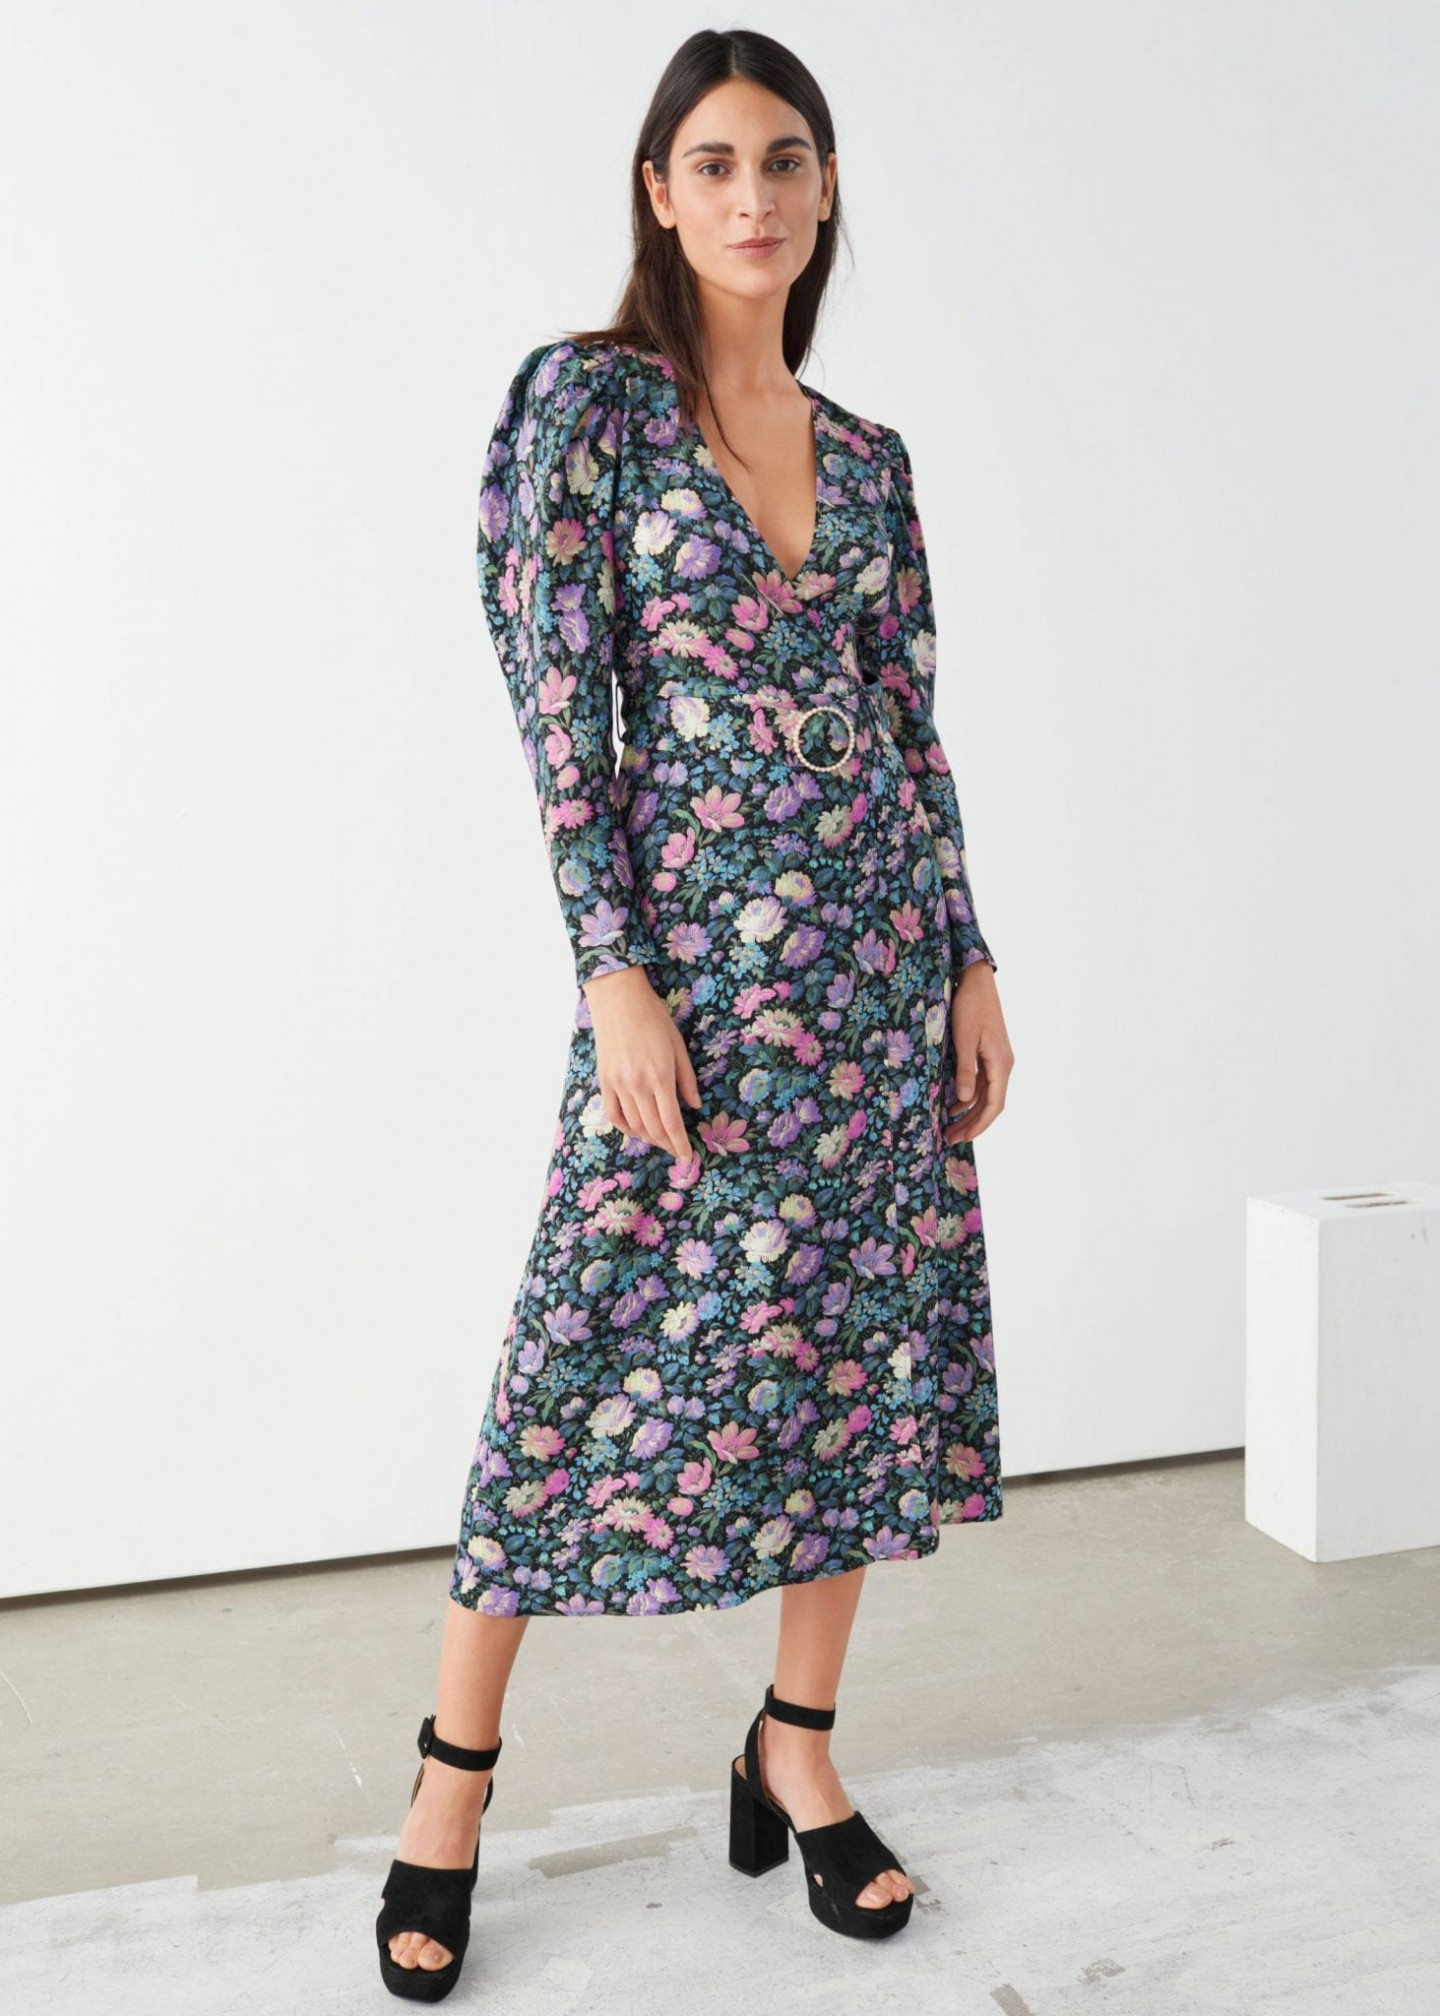 AND OTHER STORIES Pearl Buckle Belted Midi Dress